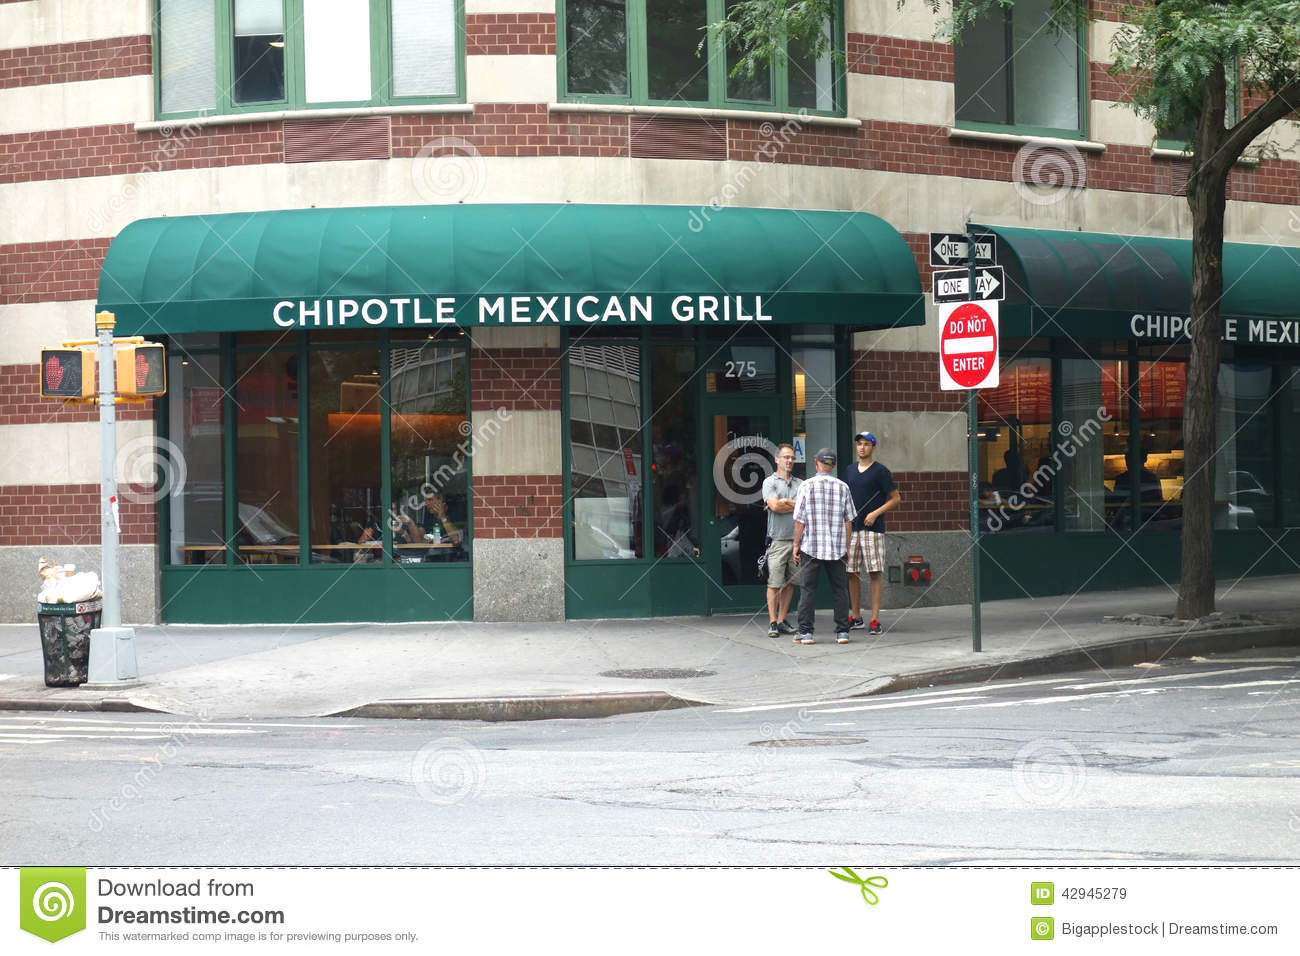 chipotle mexican grill evaluation Reports suggest that chipotle mexican grill (nyse: cmg) has hired david acheson and david theno as food safety consultants in an attempt to ensure that the food virus outbreaks which the chipotle's sales and consequently its valuation were significantly impacted after the e-coli outbreak last year.